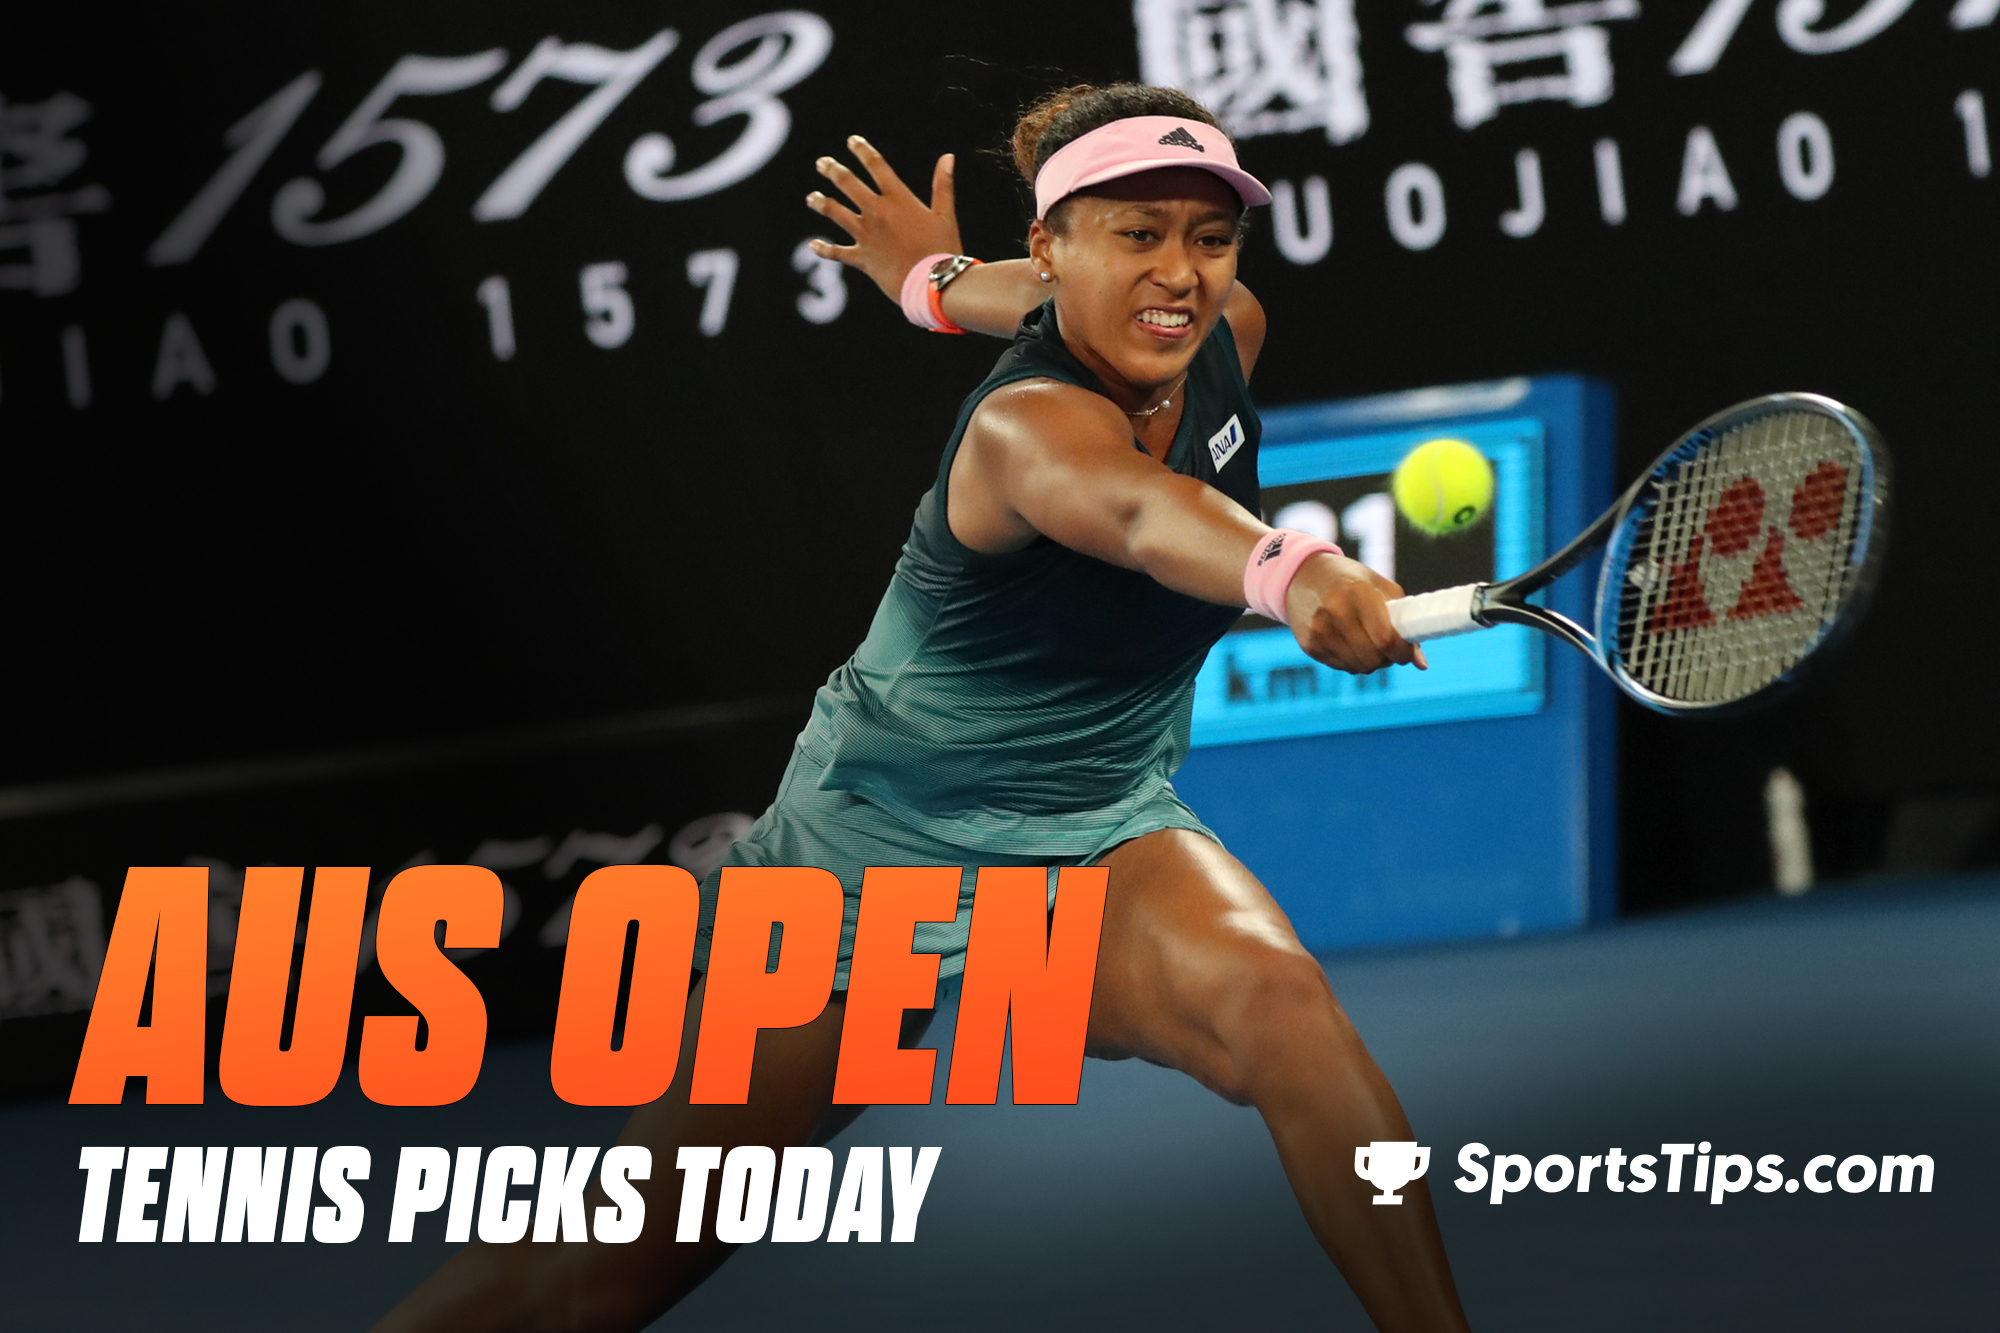 Tennis Predictions Today For The Australian Open – Women's Final 2021